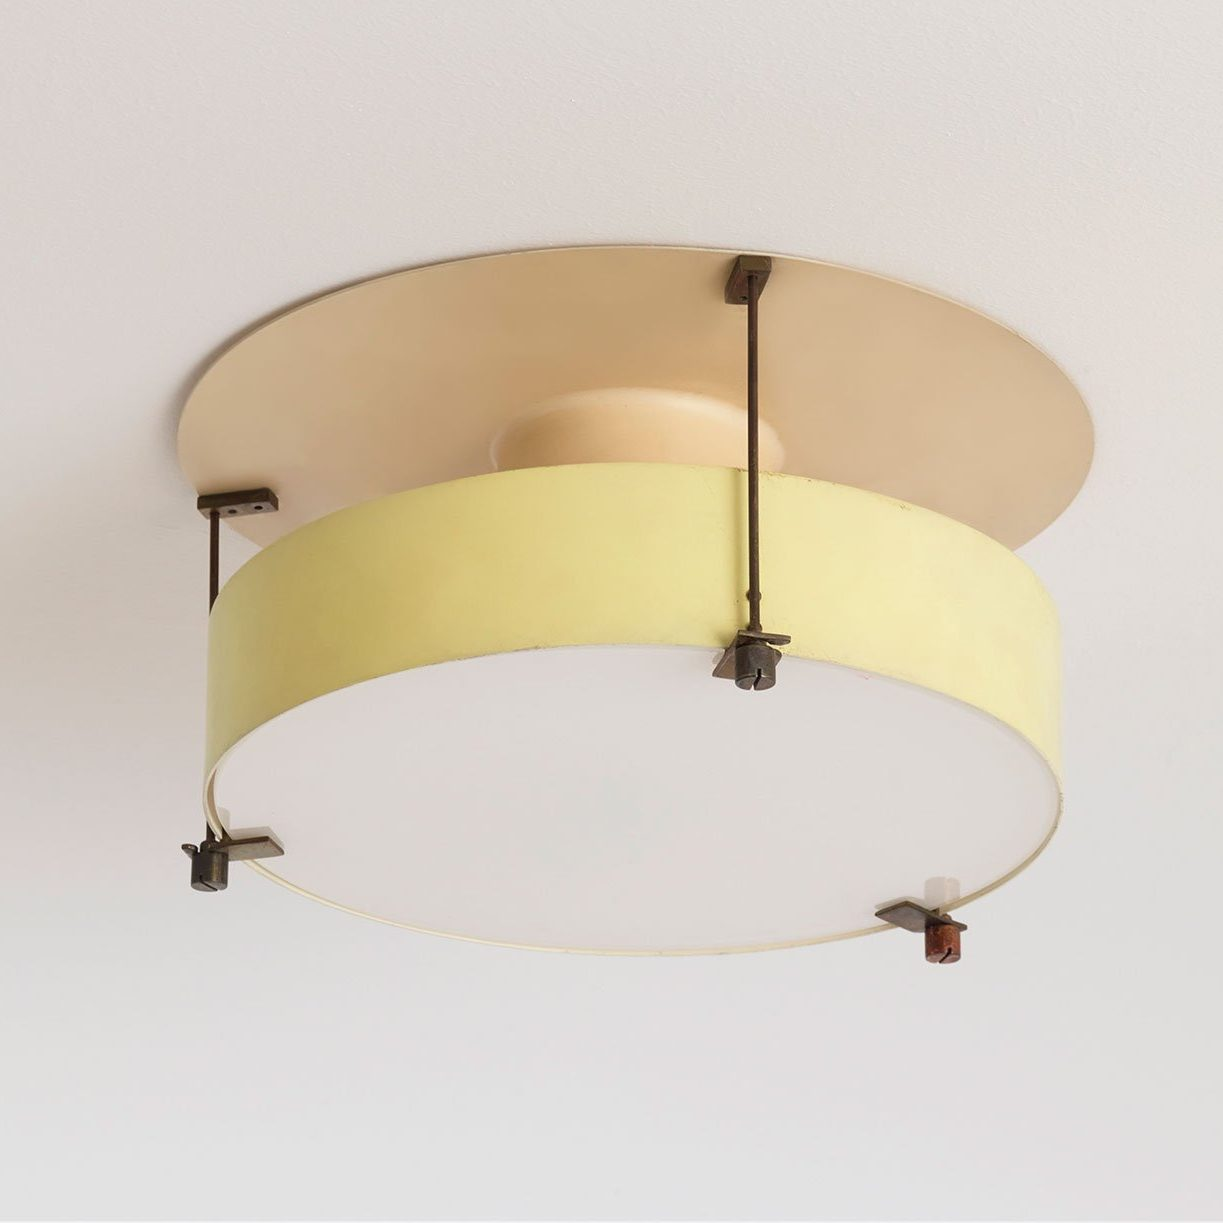 Tito Agnoli |                                  Ceiling light